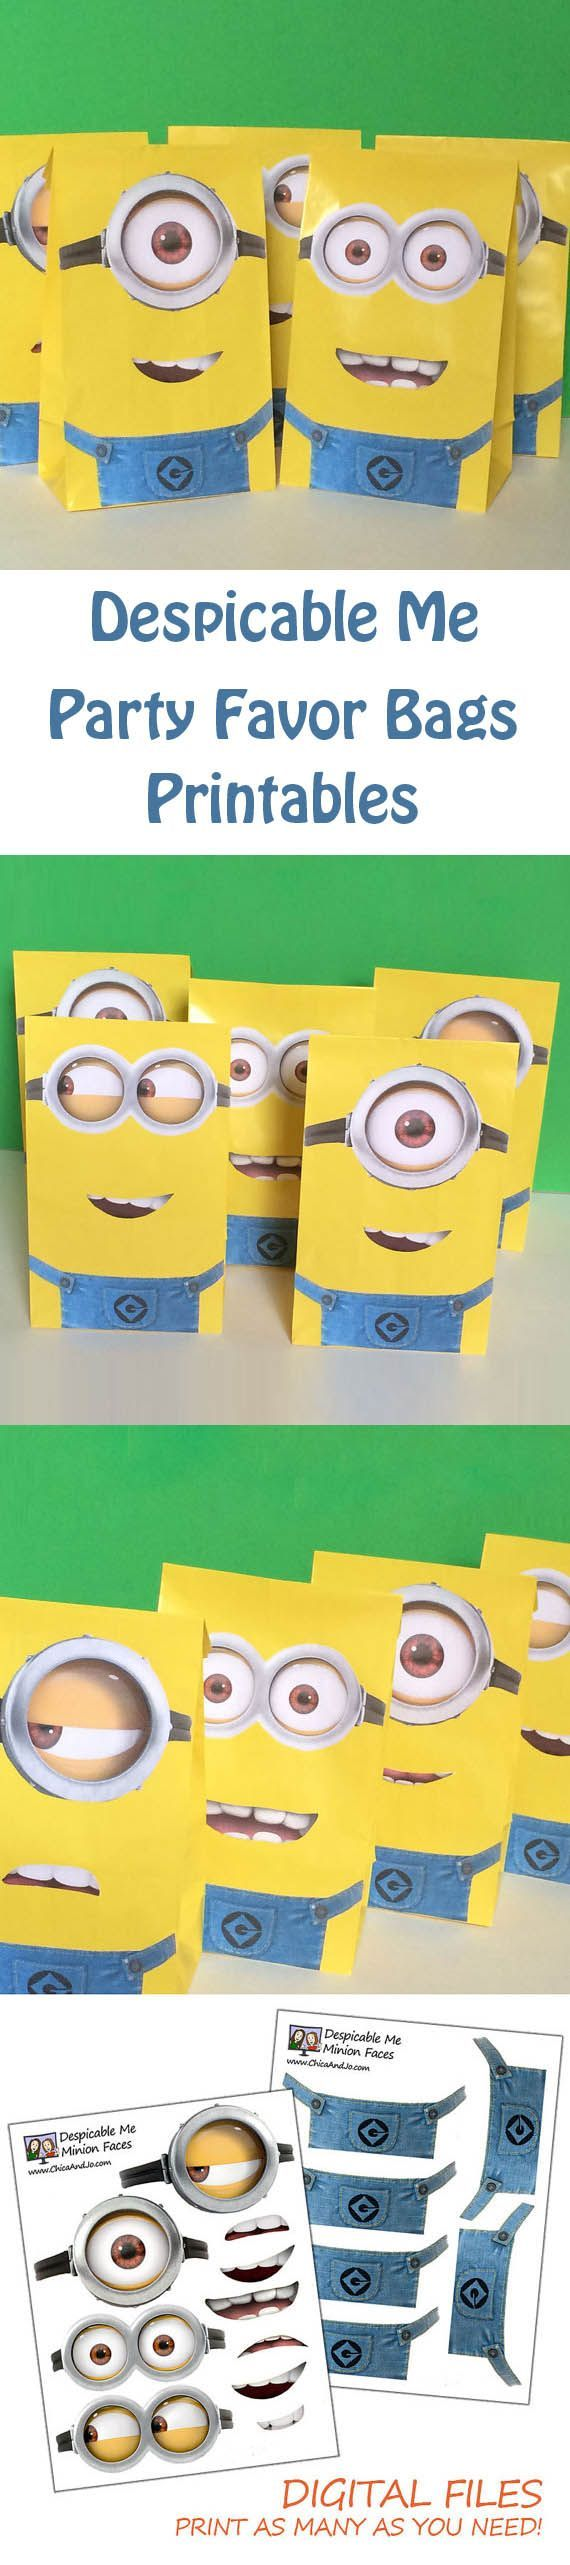 Planning a Despicable Me party? These Minion favor bag printables will wow kids and adults alike. Super simple to print and then mix up the different eyes and mouths for lots of Minion options. #despicableme #minions #kidparties